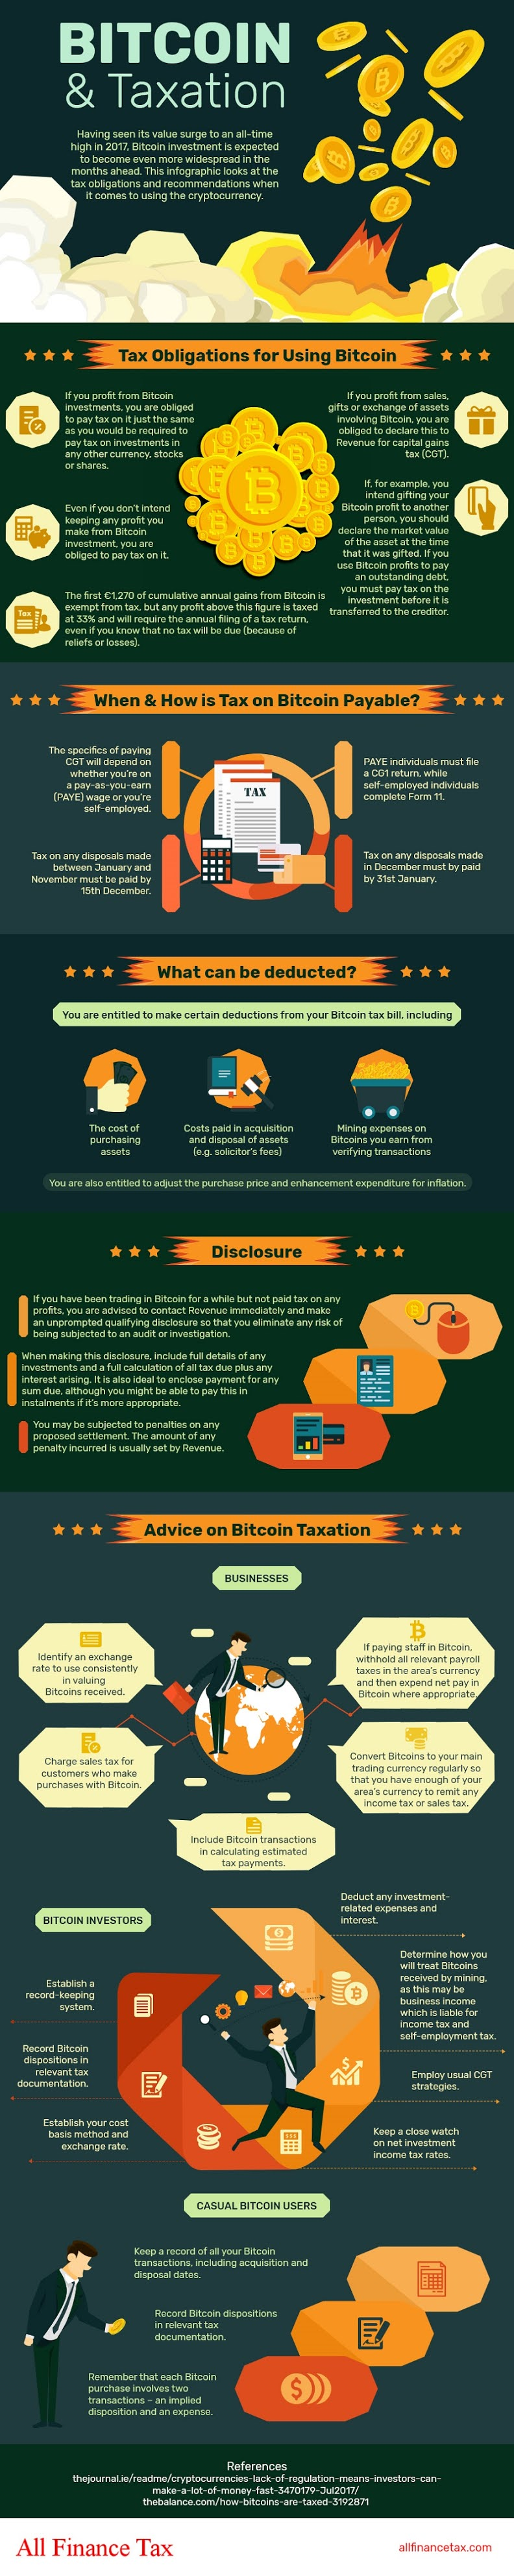 Bitcoin & Taxation #infographic #Bitcoin #Bitcoin & Taxation